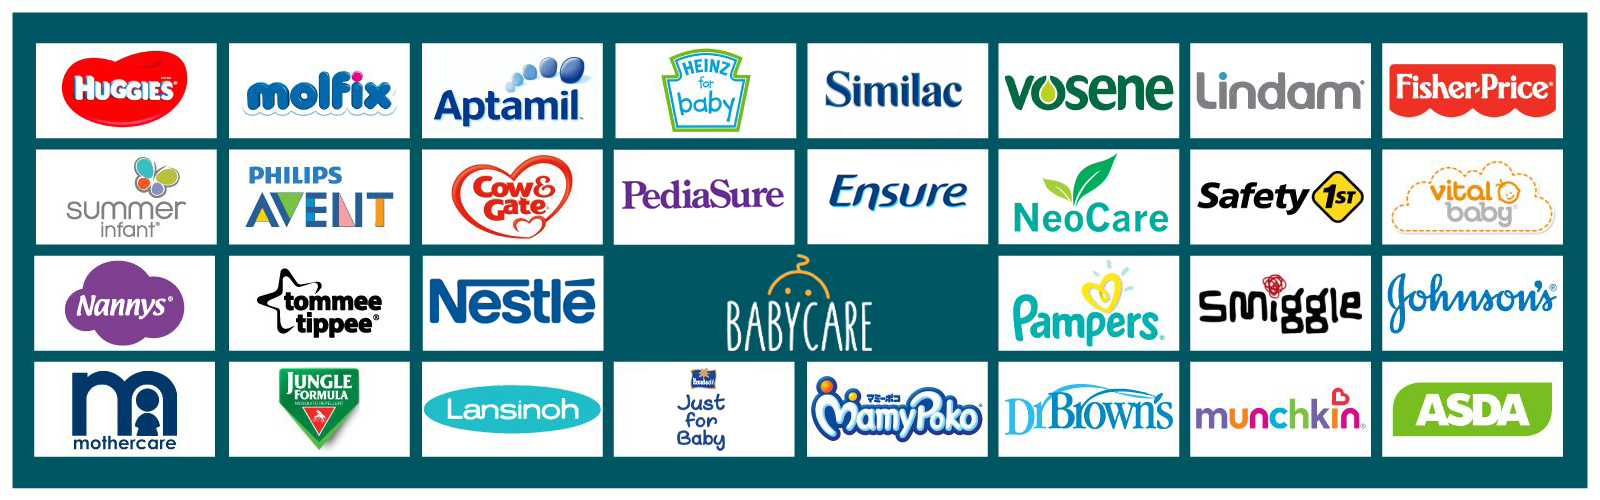 Babycare Banner